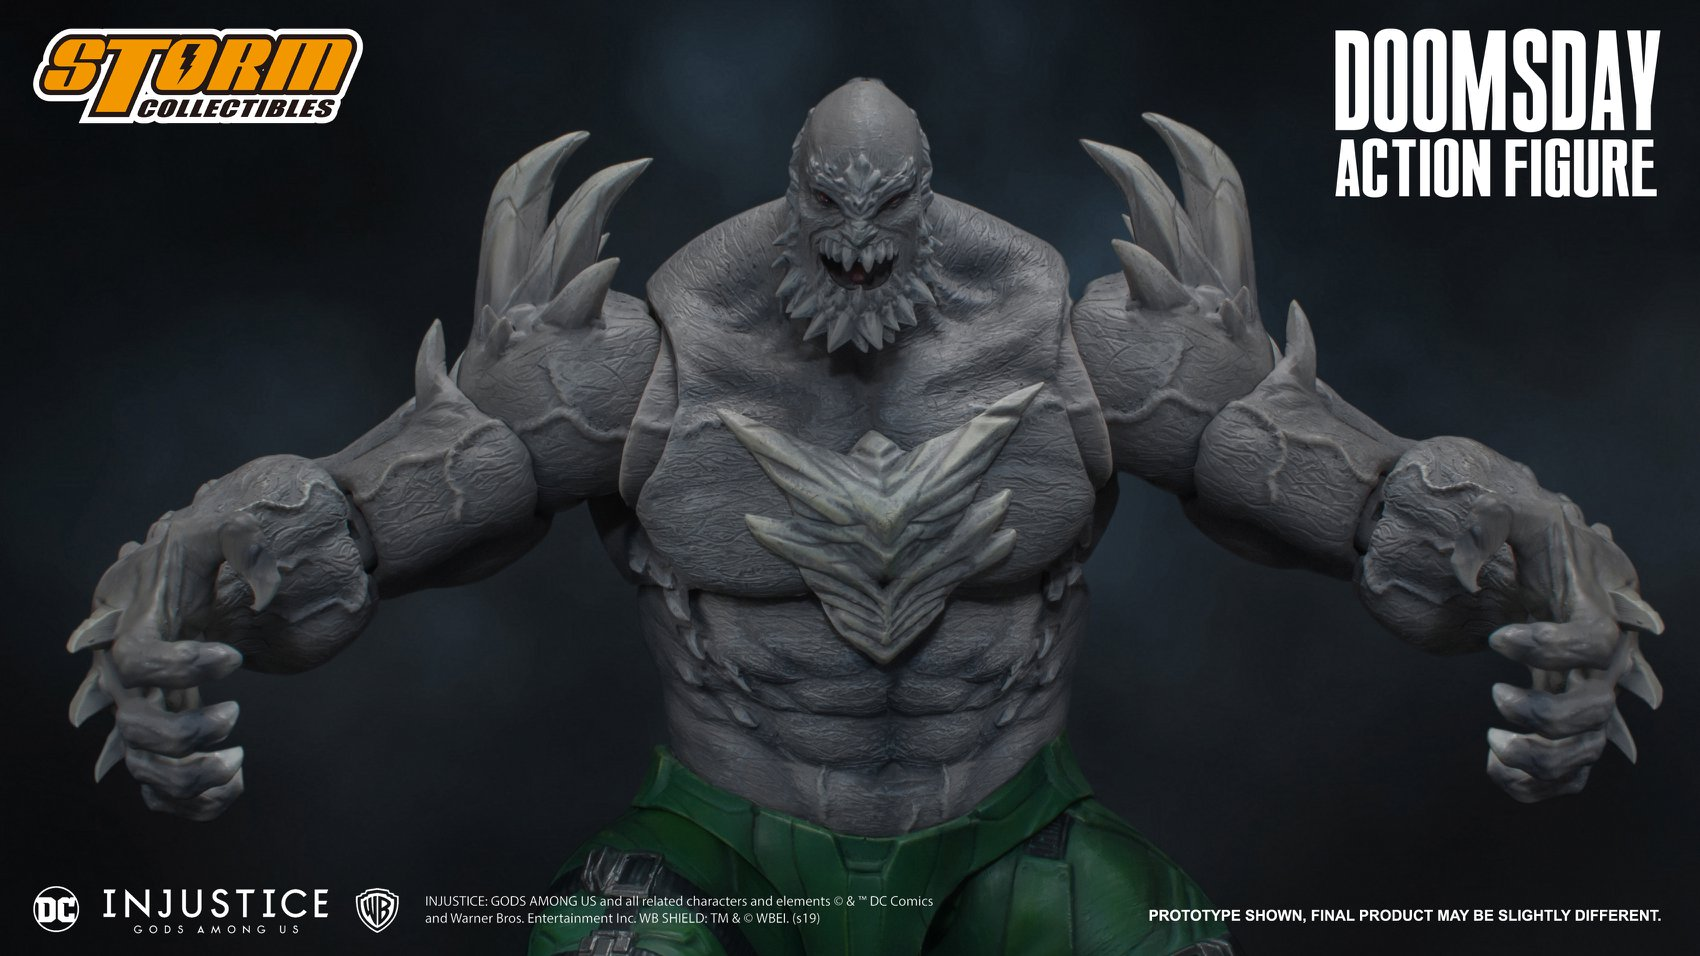 Storm Collectibles Dc Injustice Doomsday Promo Images And Info